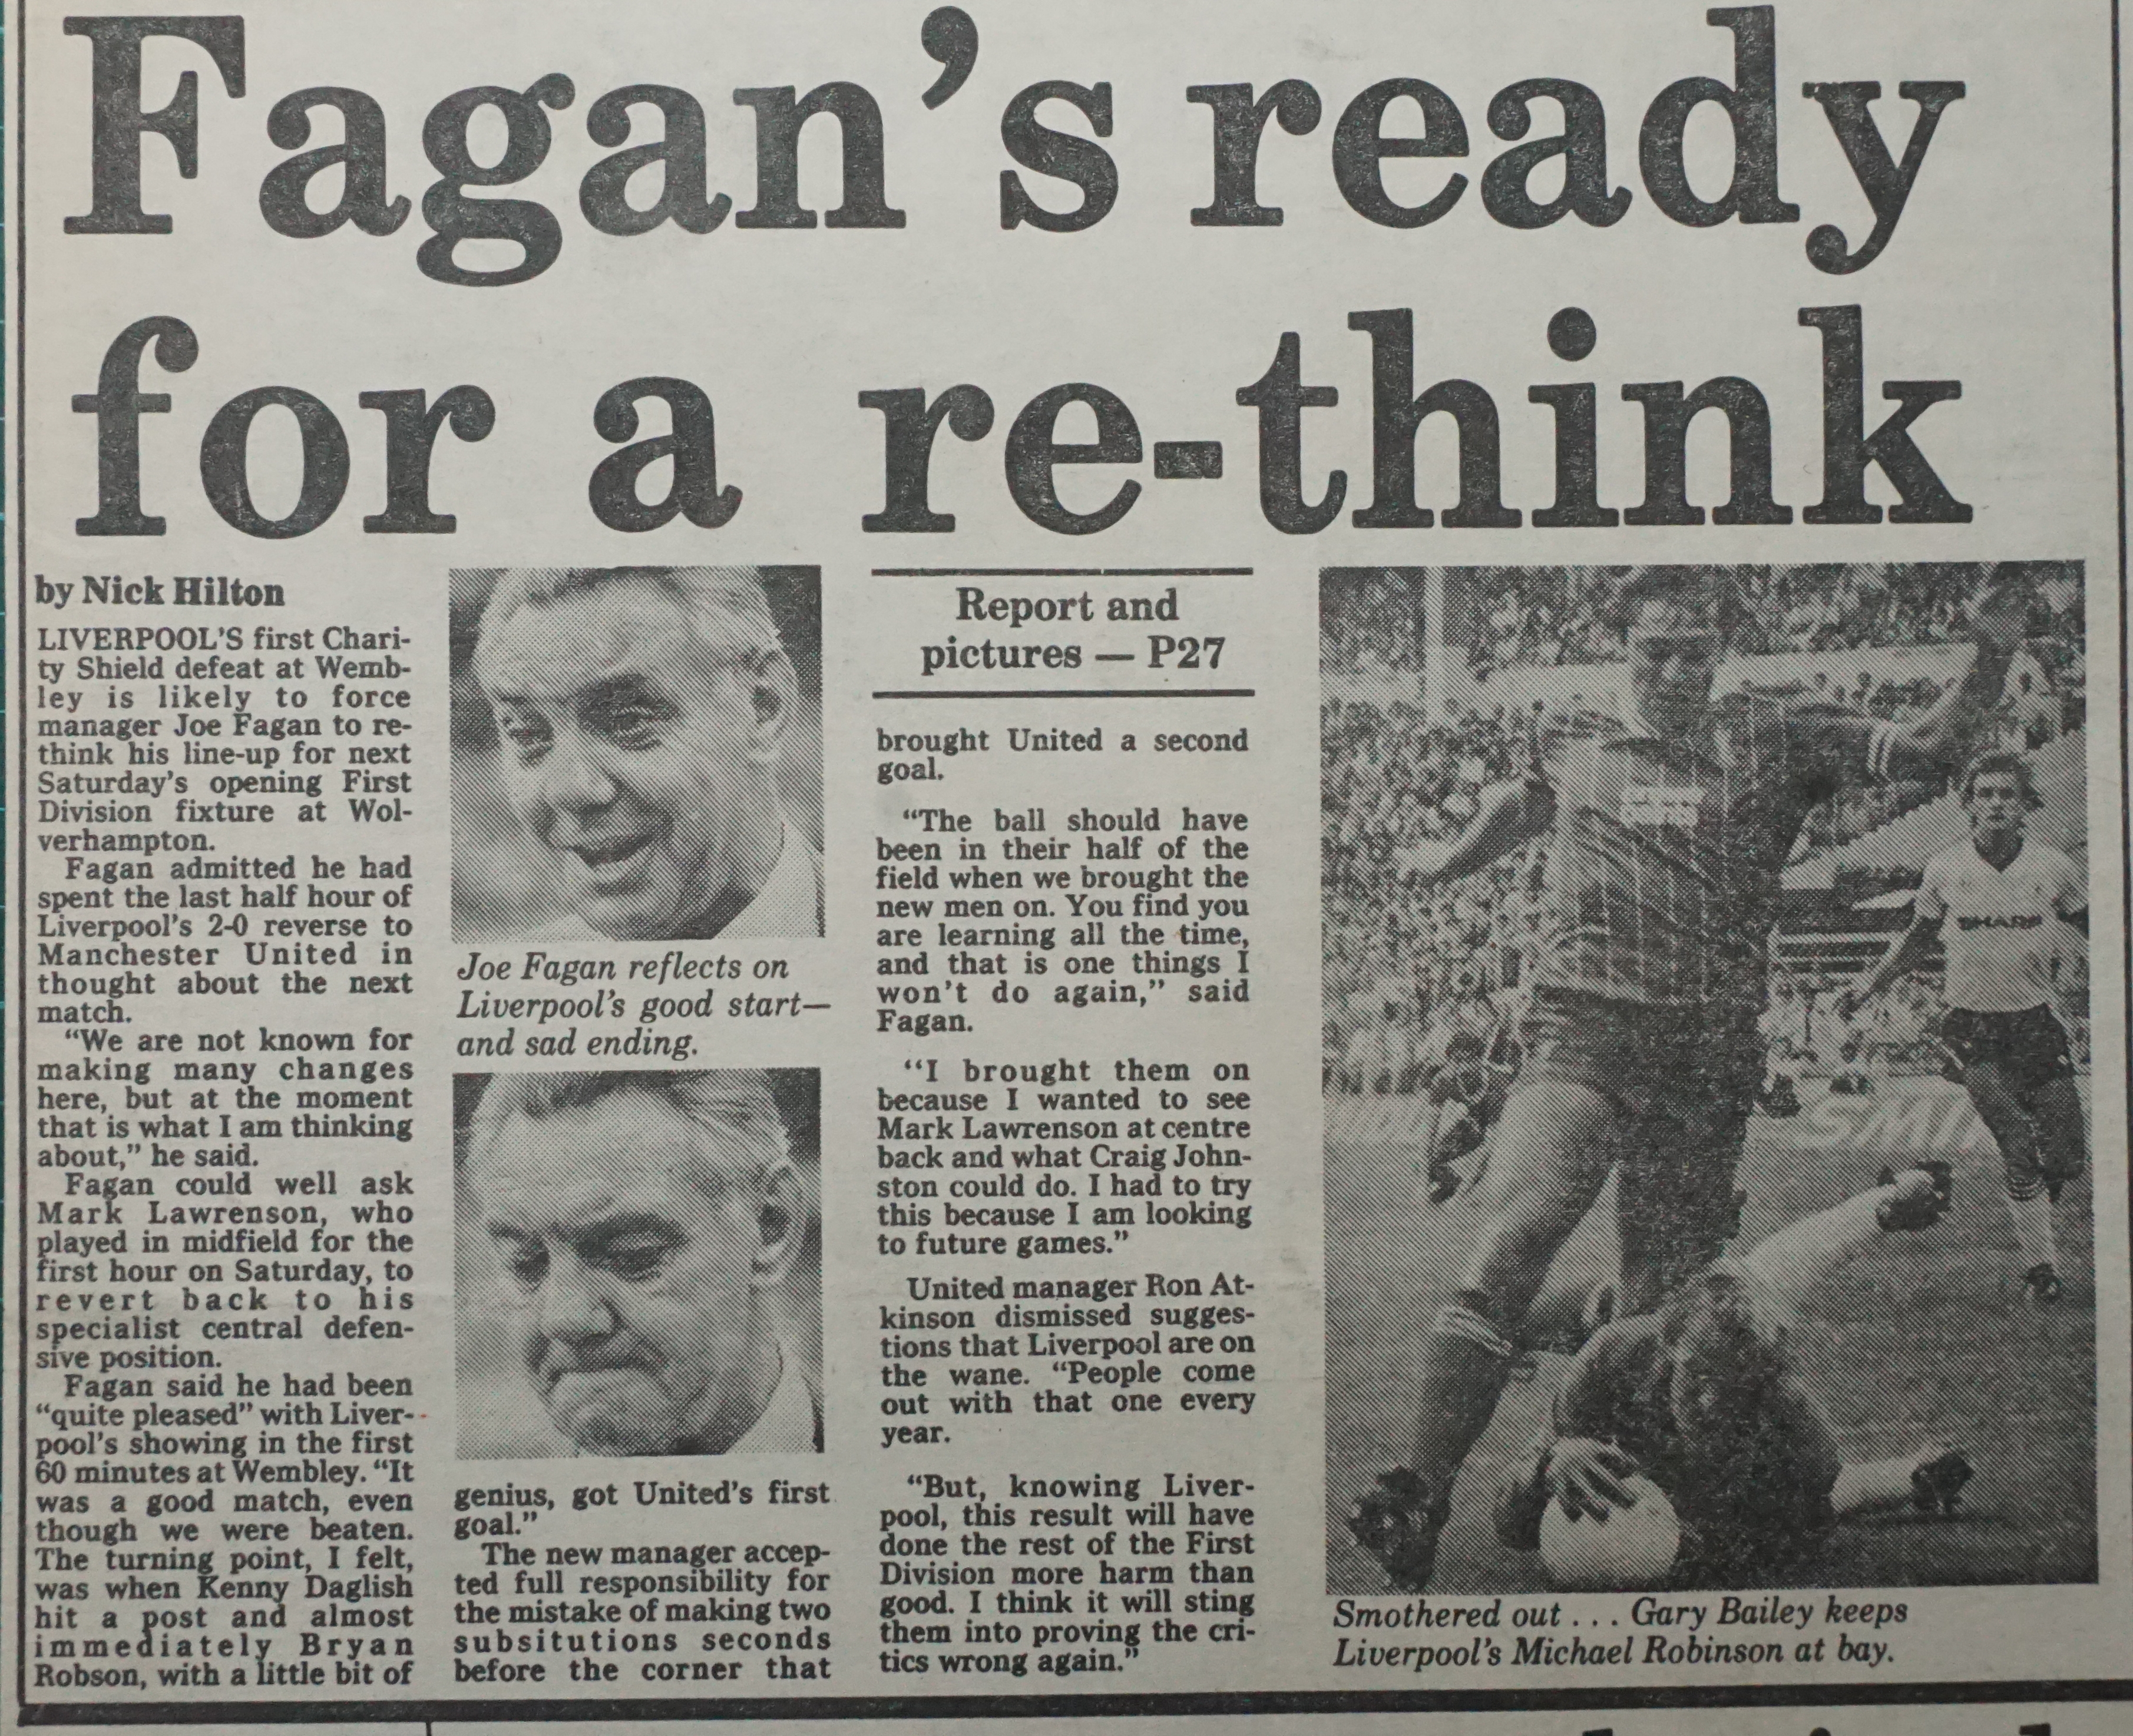 Fagan's ready for a rethink - August 1983